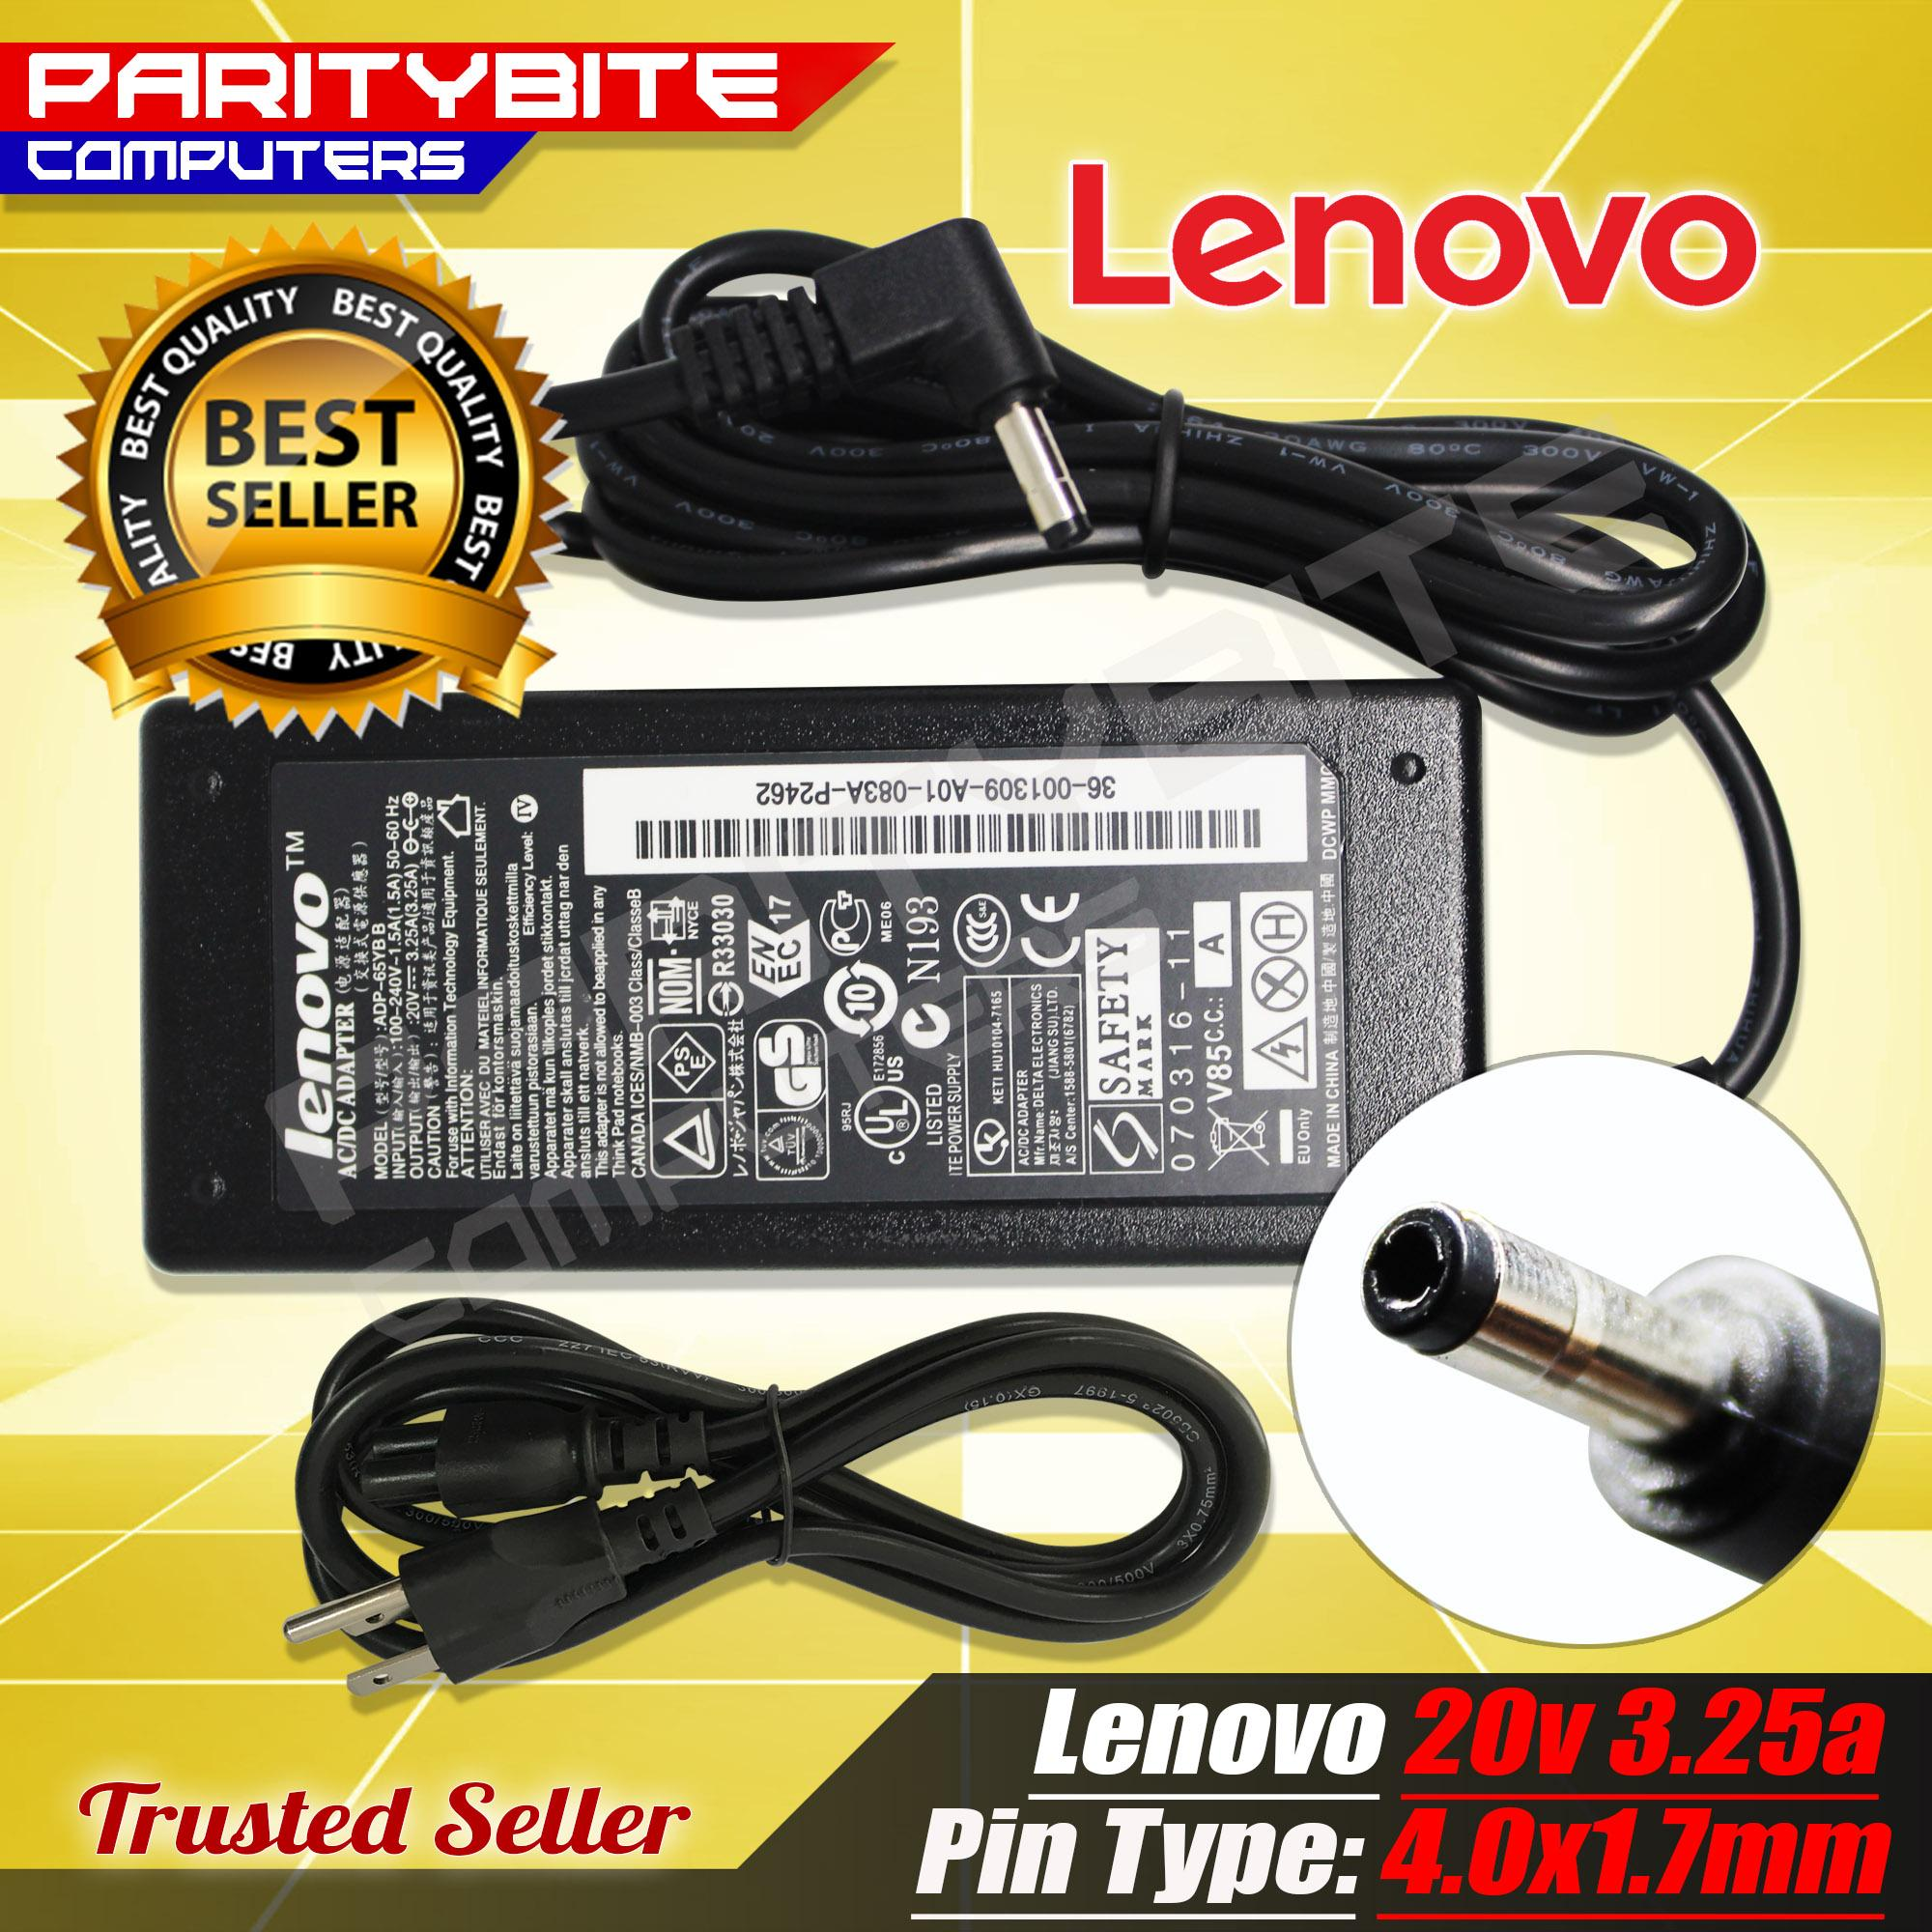 Lenovo Philippines - Lenovo Computer Accessories for sale - prices